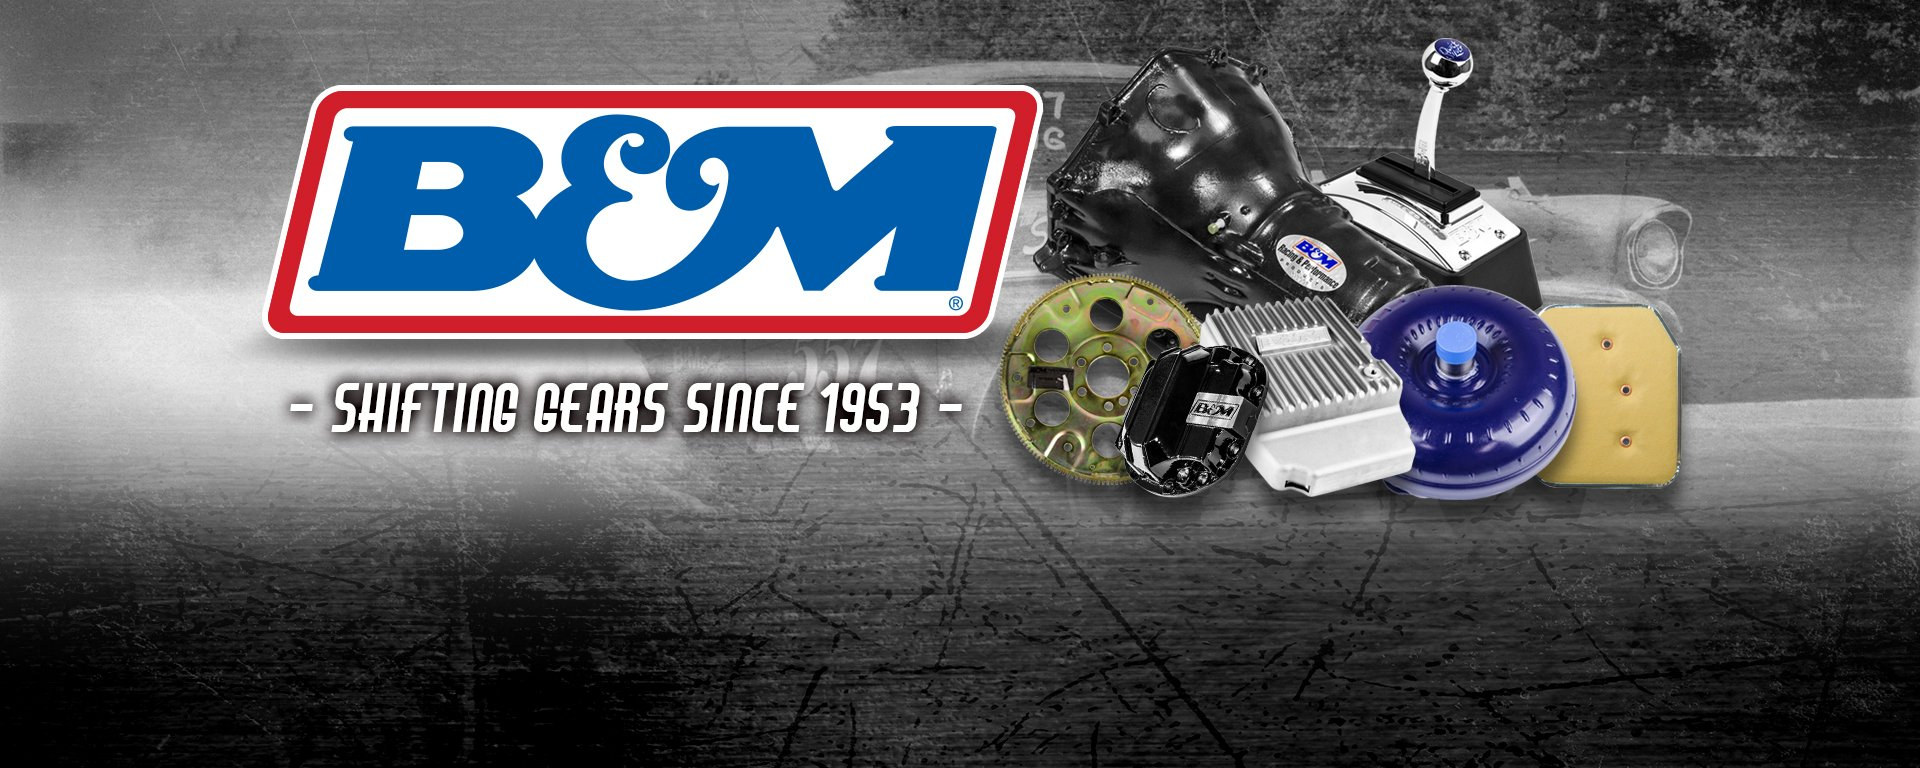 B&M - Transmissions, Shifters, Torque Converters, Diff Covers, Coolers